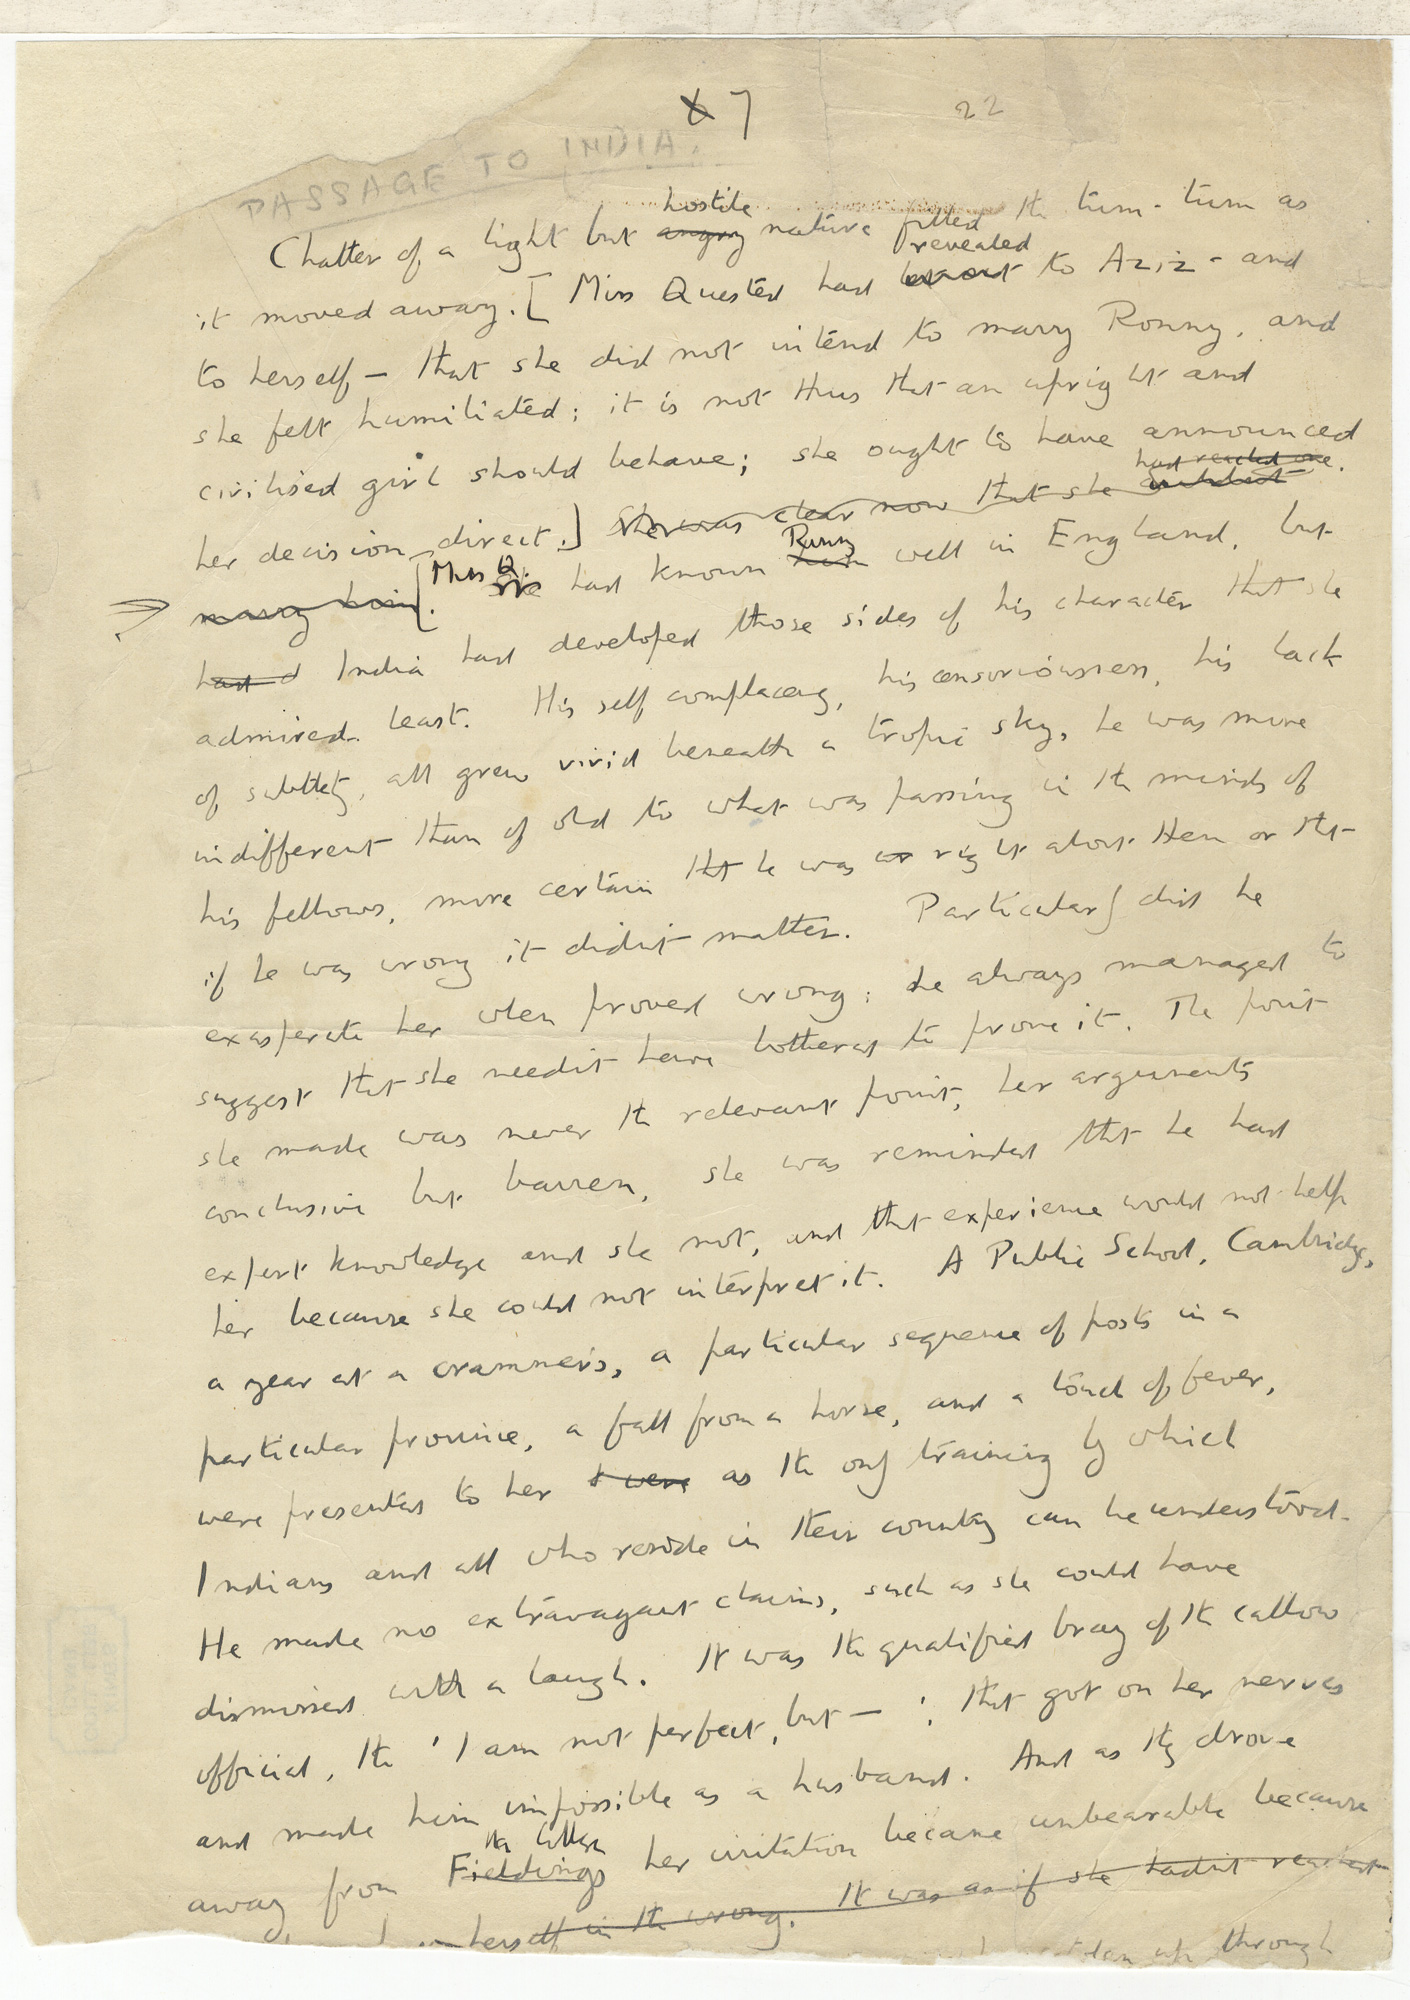 Fragments of a draft for A Passage to India